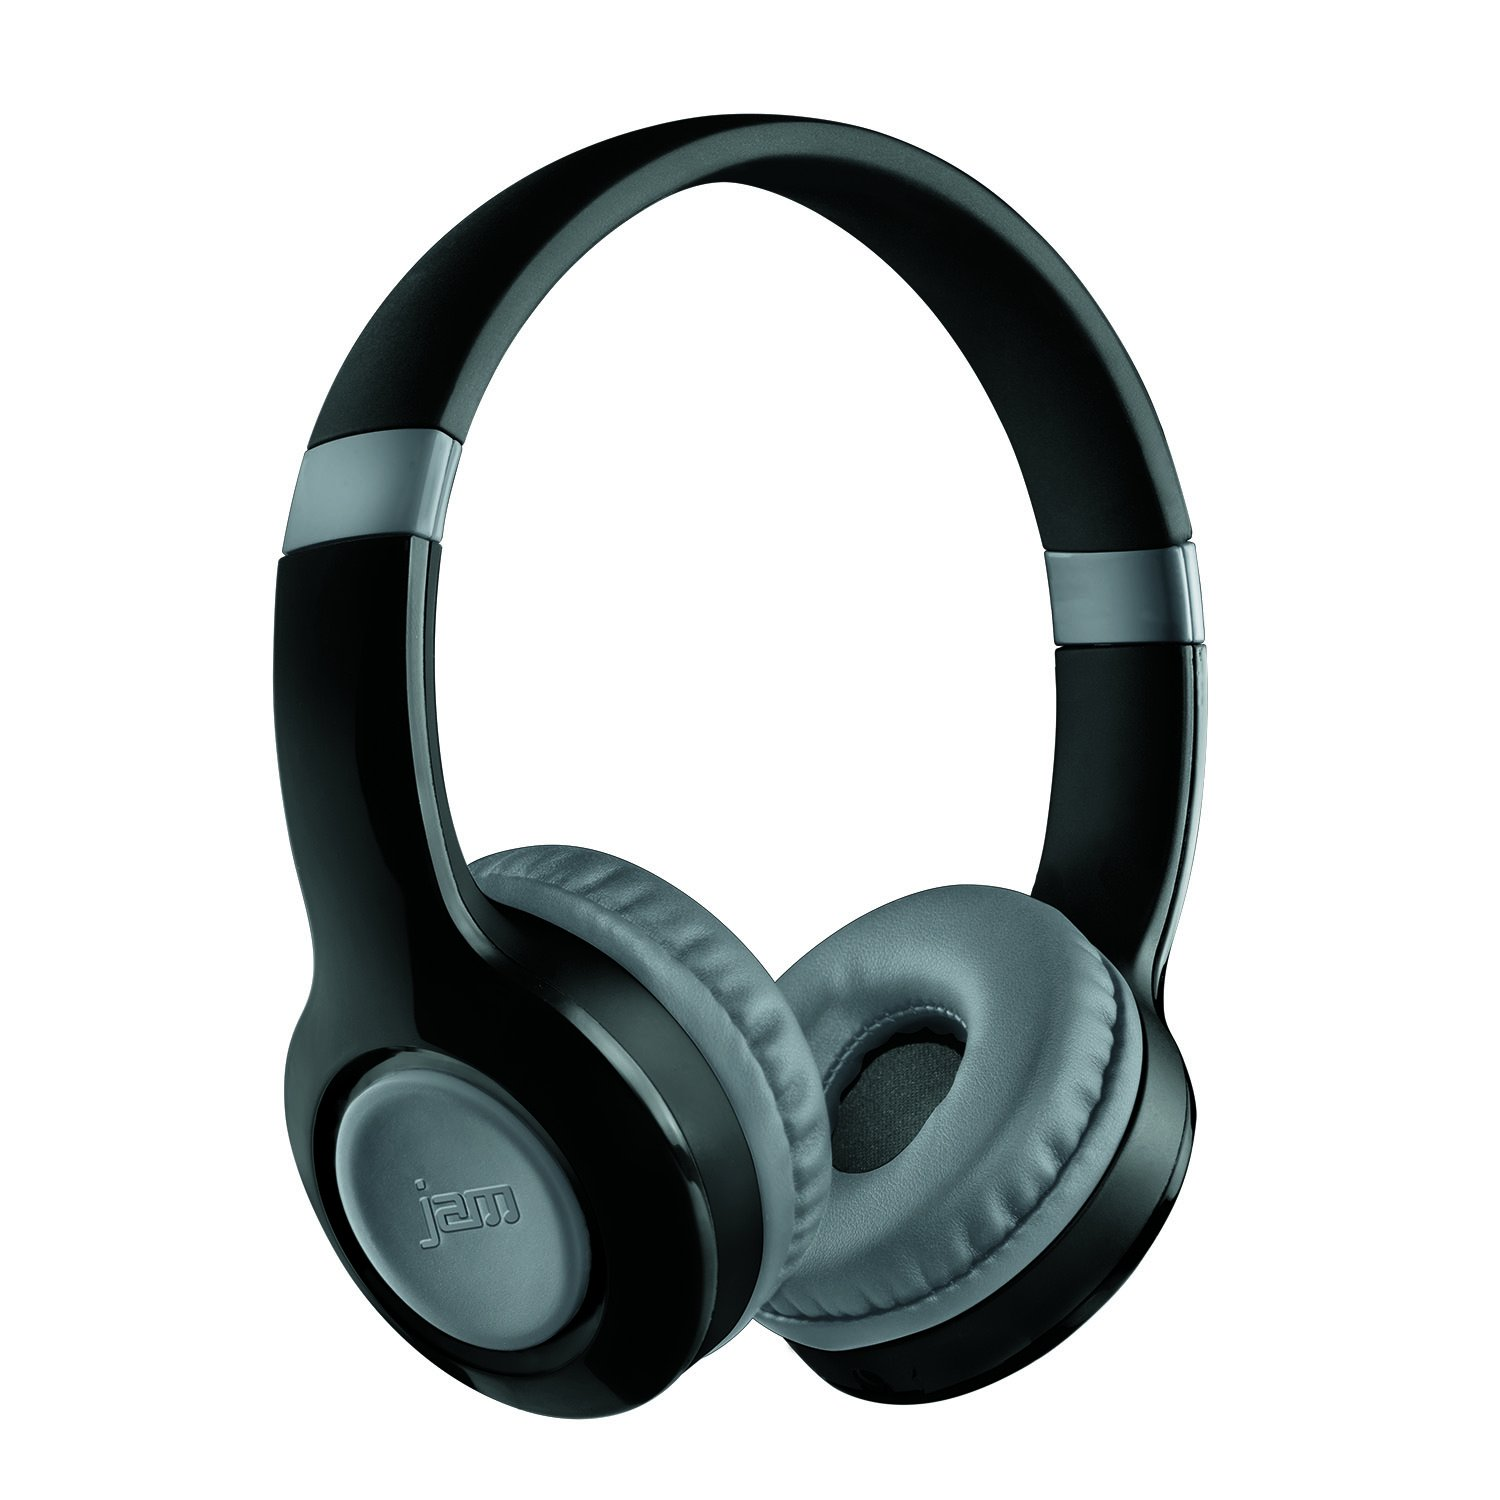 JAM Transit Lite Wireless Bluetooth Heaphones, 11 Hour Playtime, Lightweight Design, Connect Wirelessly to any Bluetooth Device, 30ft Range, Adjust Volume on Ear Cup, Aux-In Port, HX-HP400GY Grey